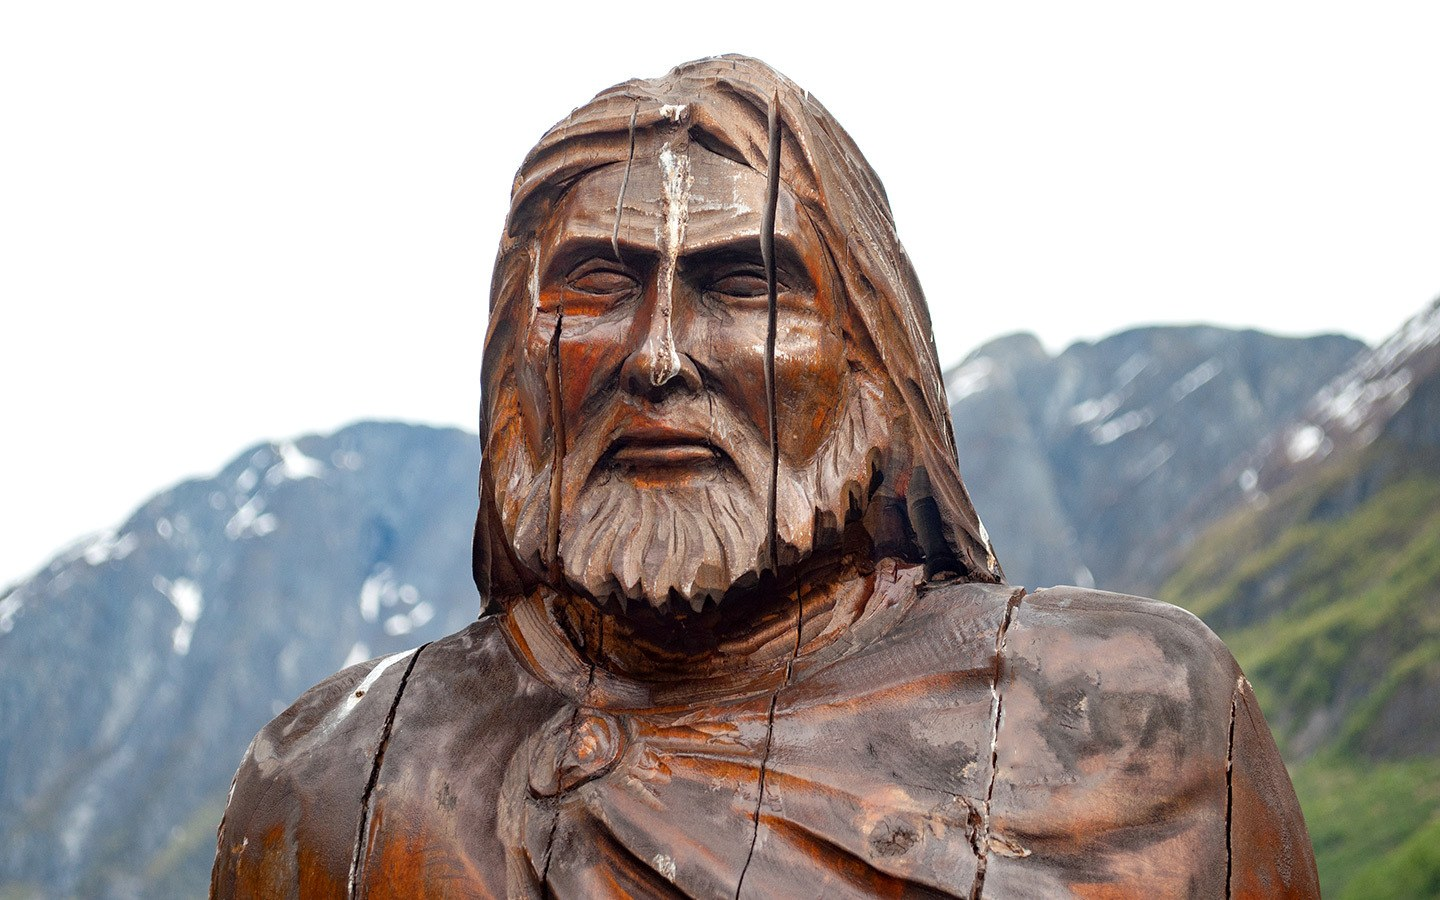 Viking statue at Gudvangen on Norwegian fjord boat tour